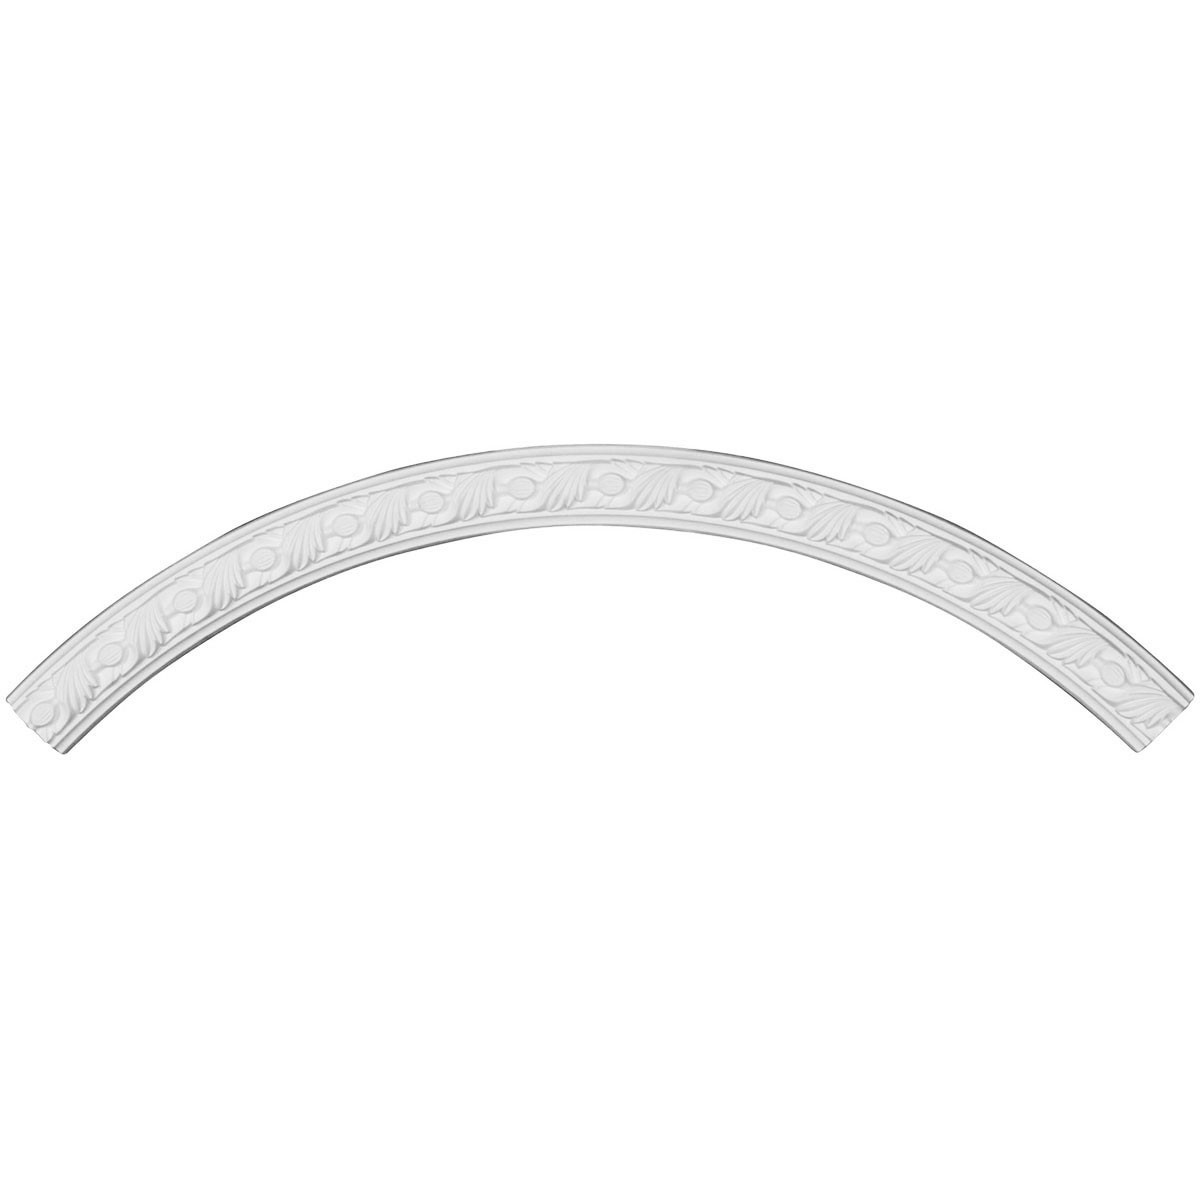 """EM-CR44MI - 43 5/8""""OD x 39 3/8""""ID x 2 1/8""""W x 7/8""""P Milton Ceiling Ring (1/4 of complete circle)"""